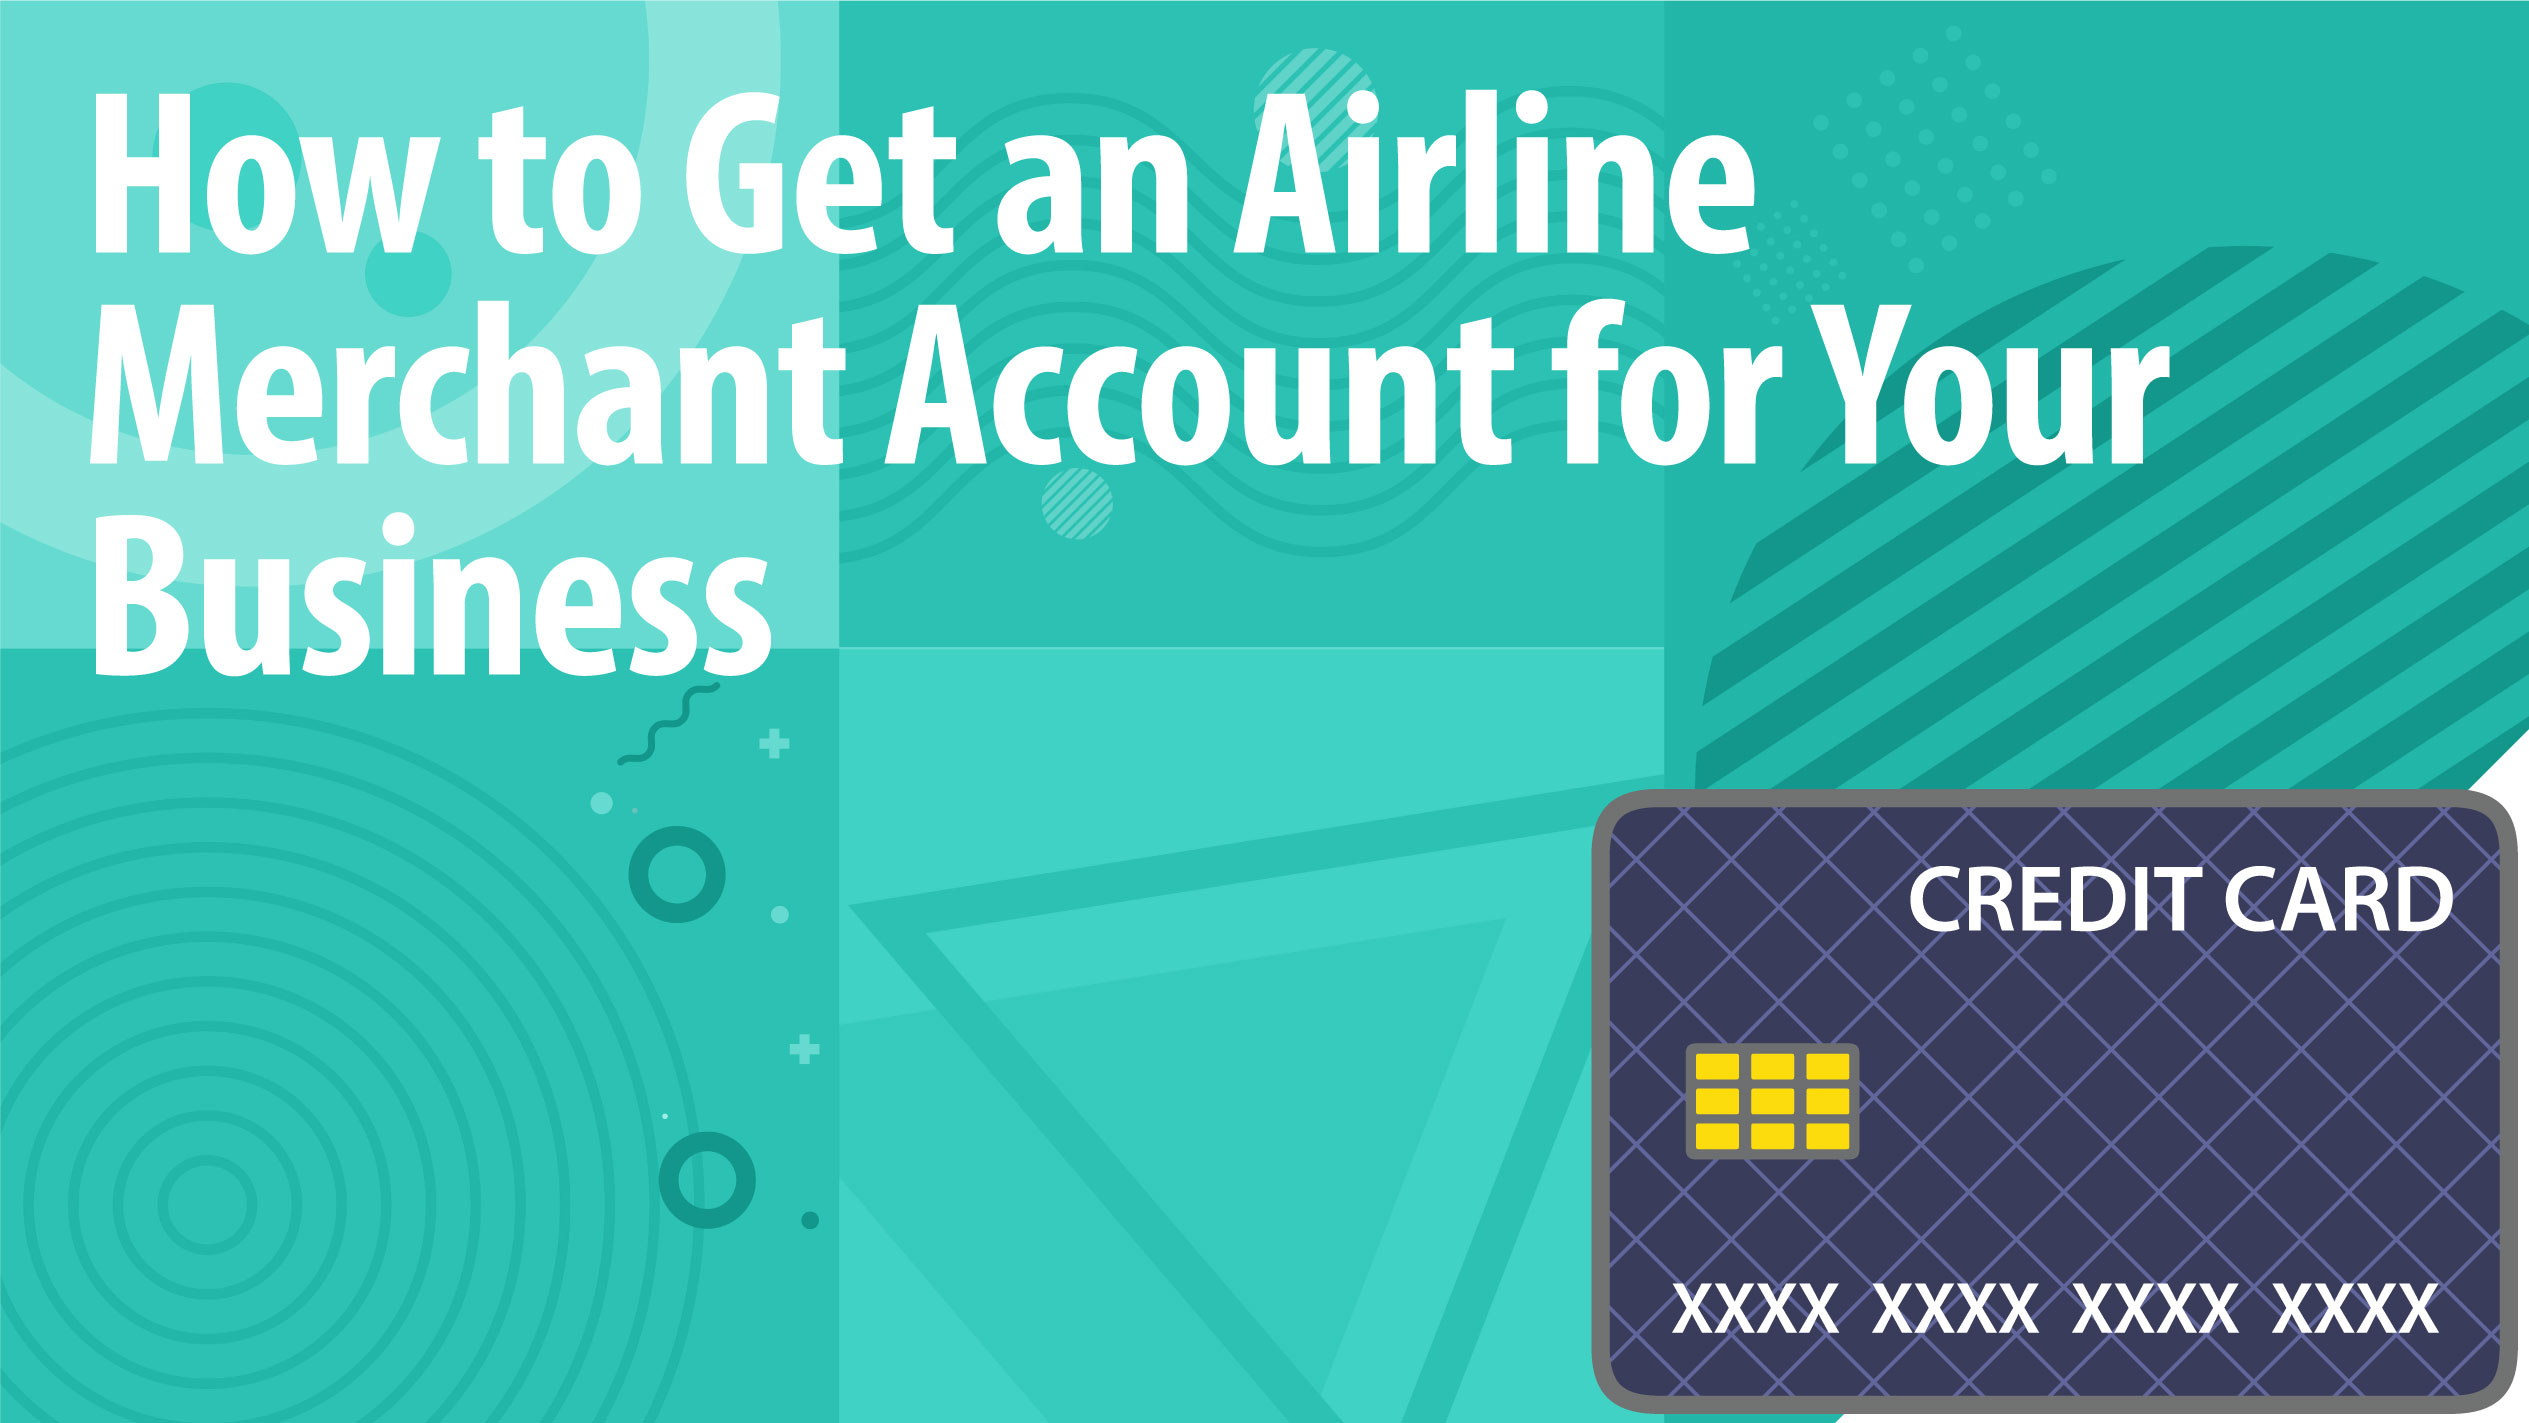 How to Get an Airline Merchant Account for Your Business